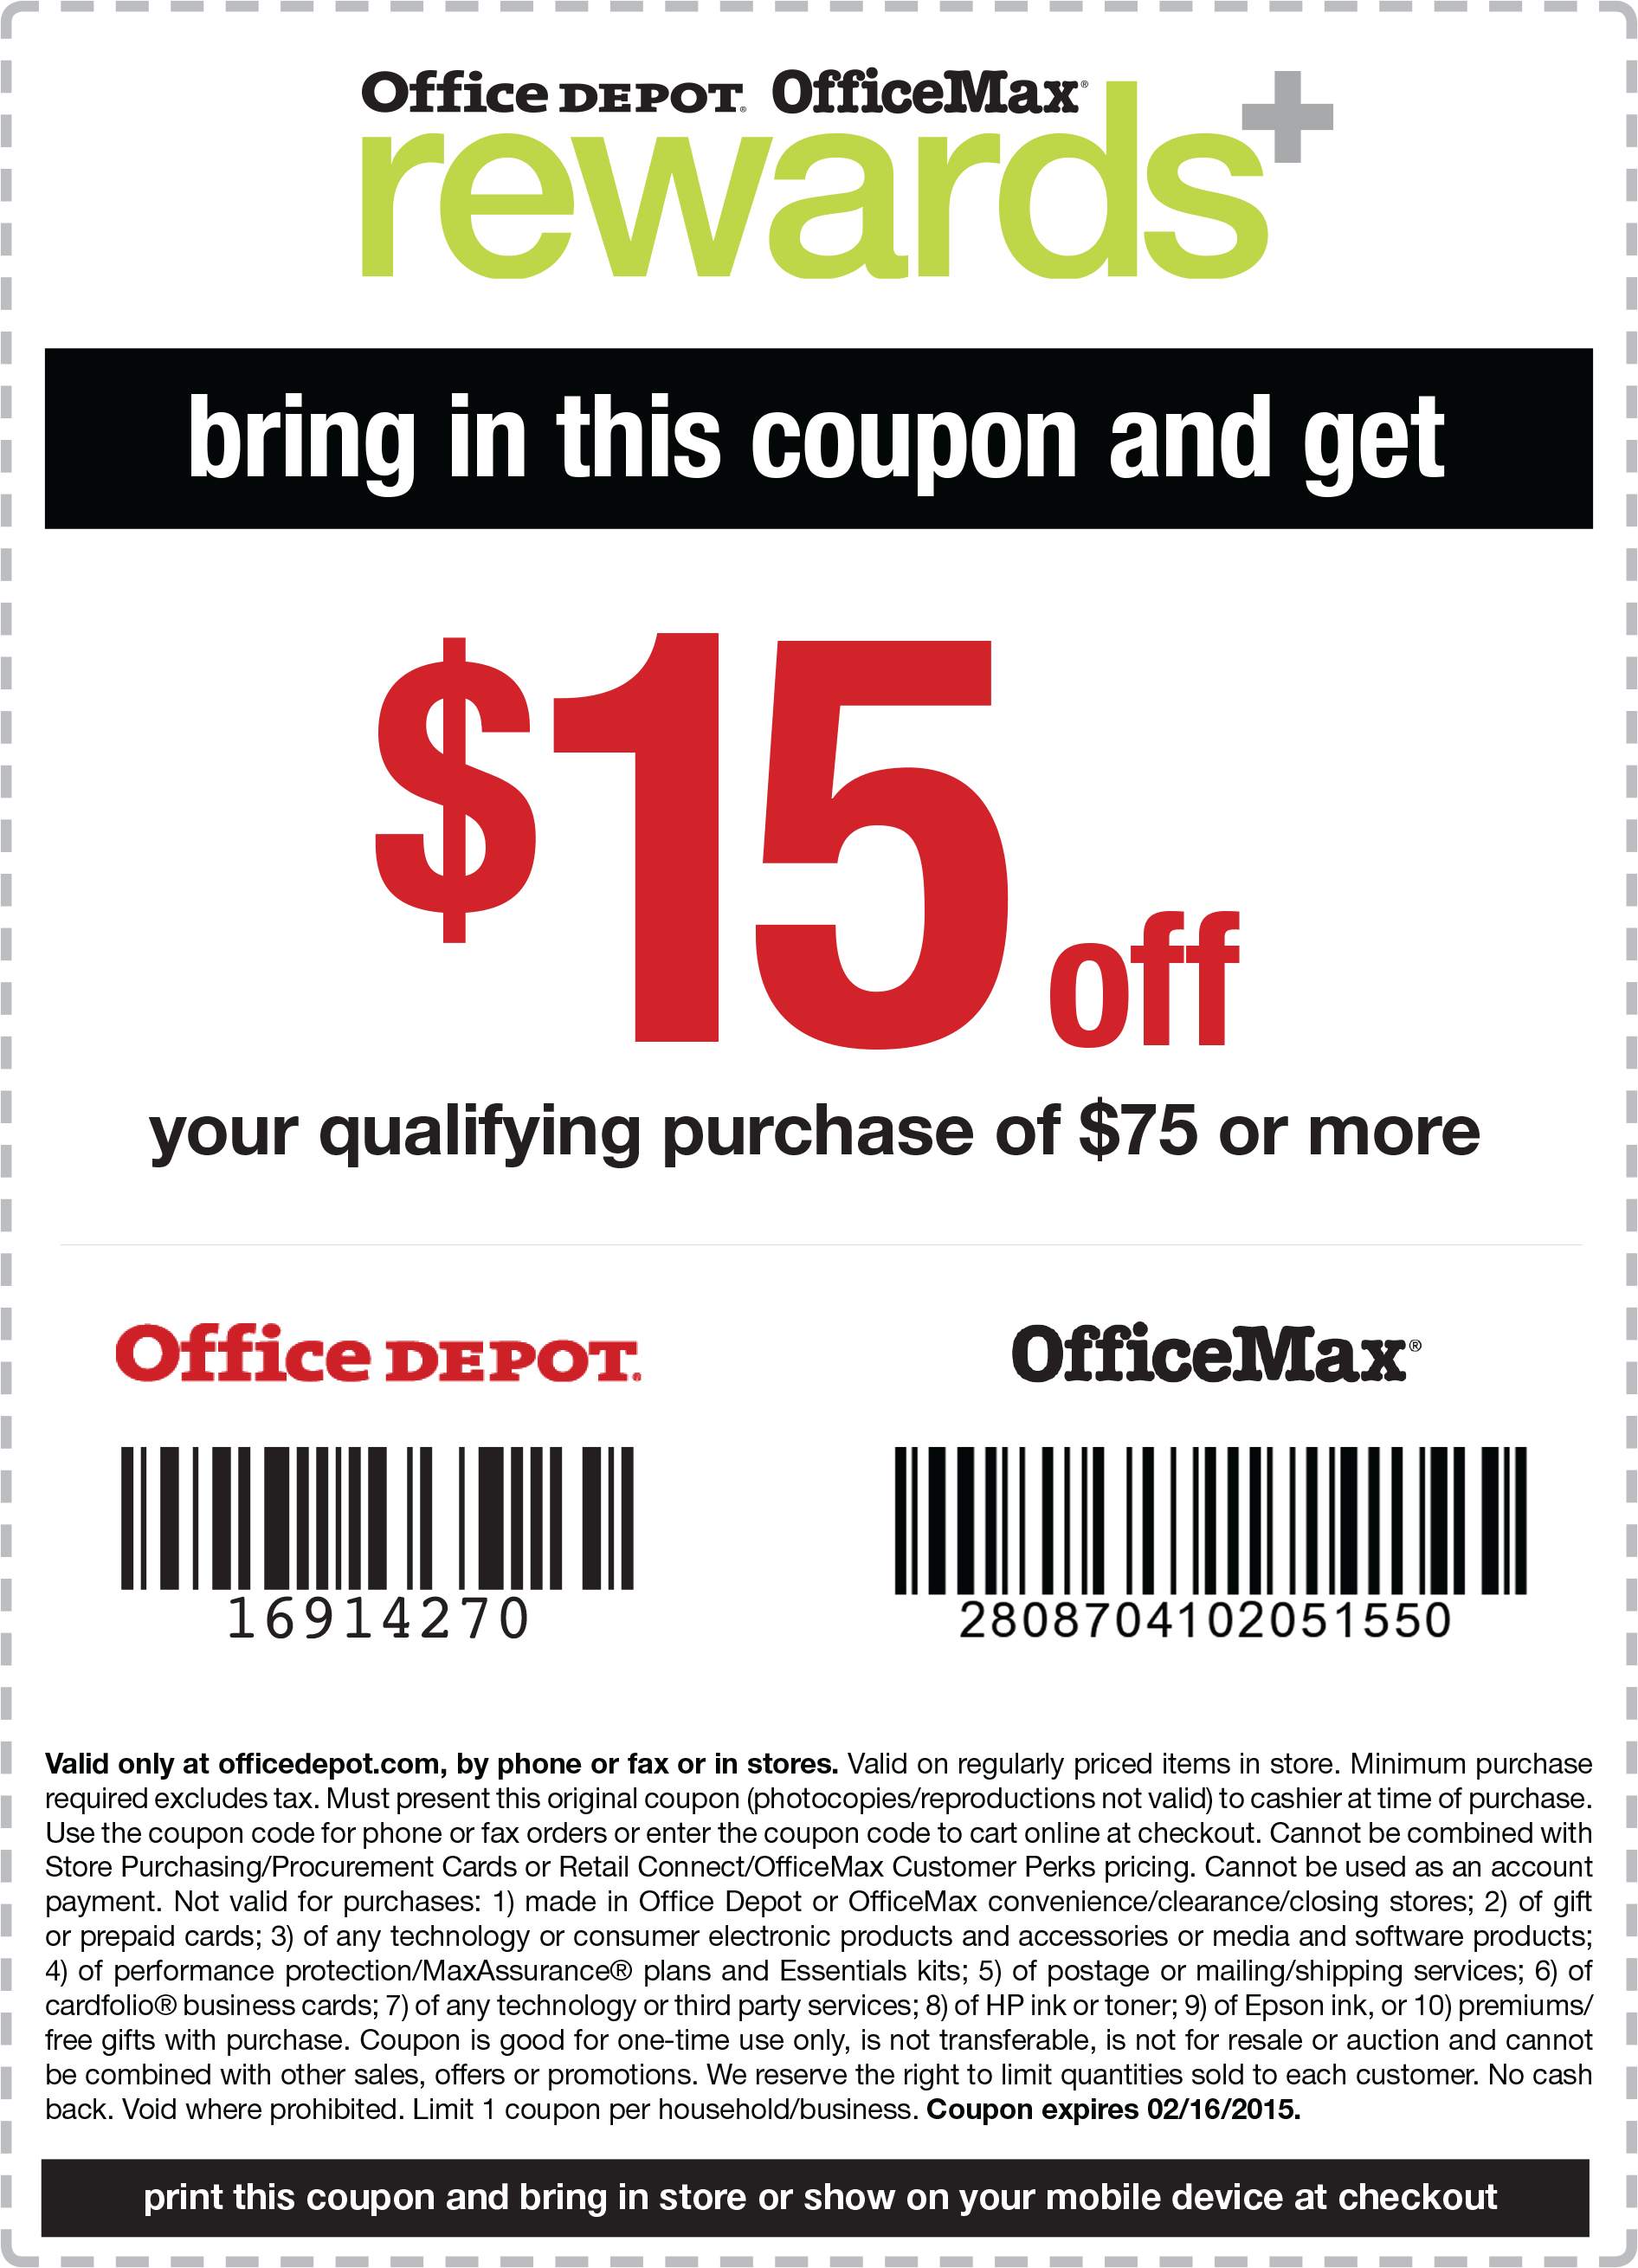 Office Depot Coupon July 2018 $15 off $75 at Office Depot & OfficeMax, or online via promo code 16914270